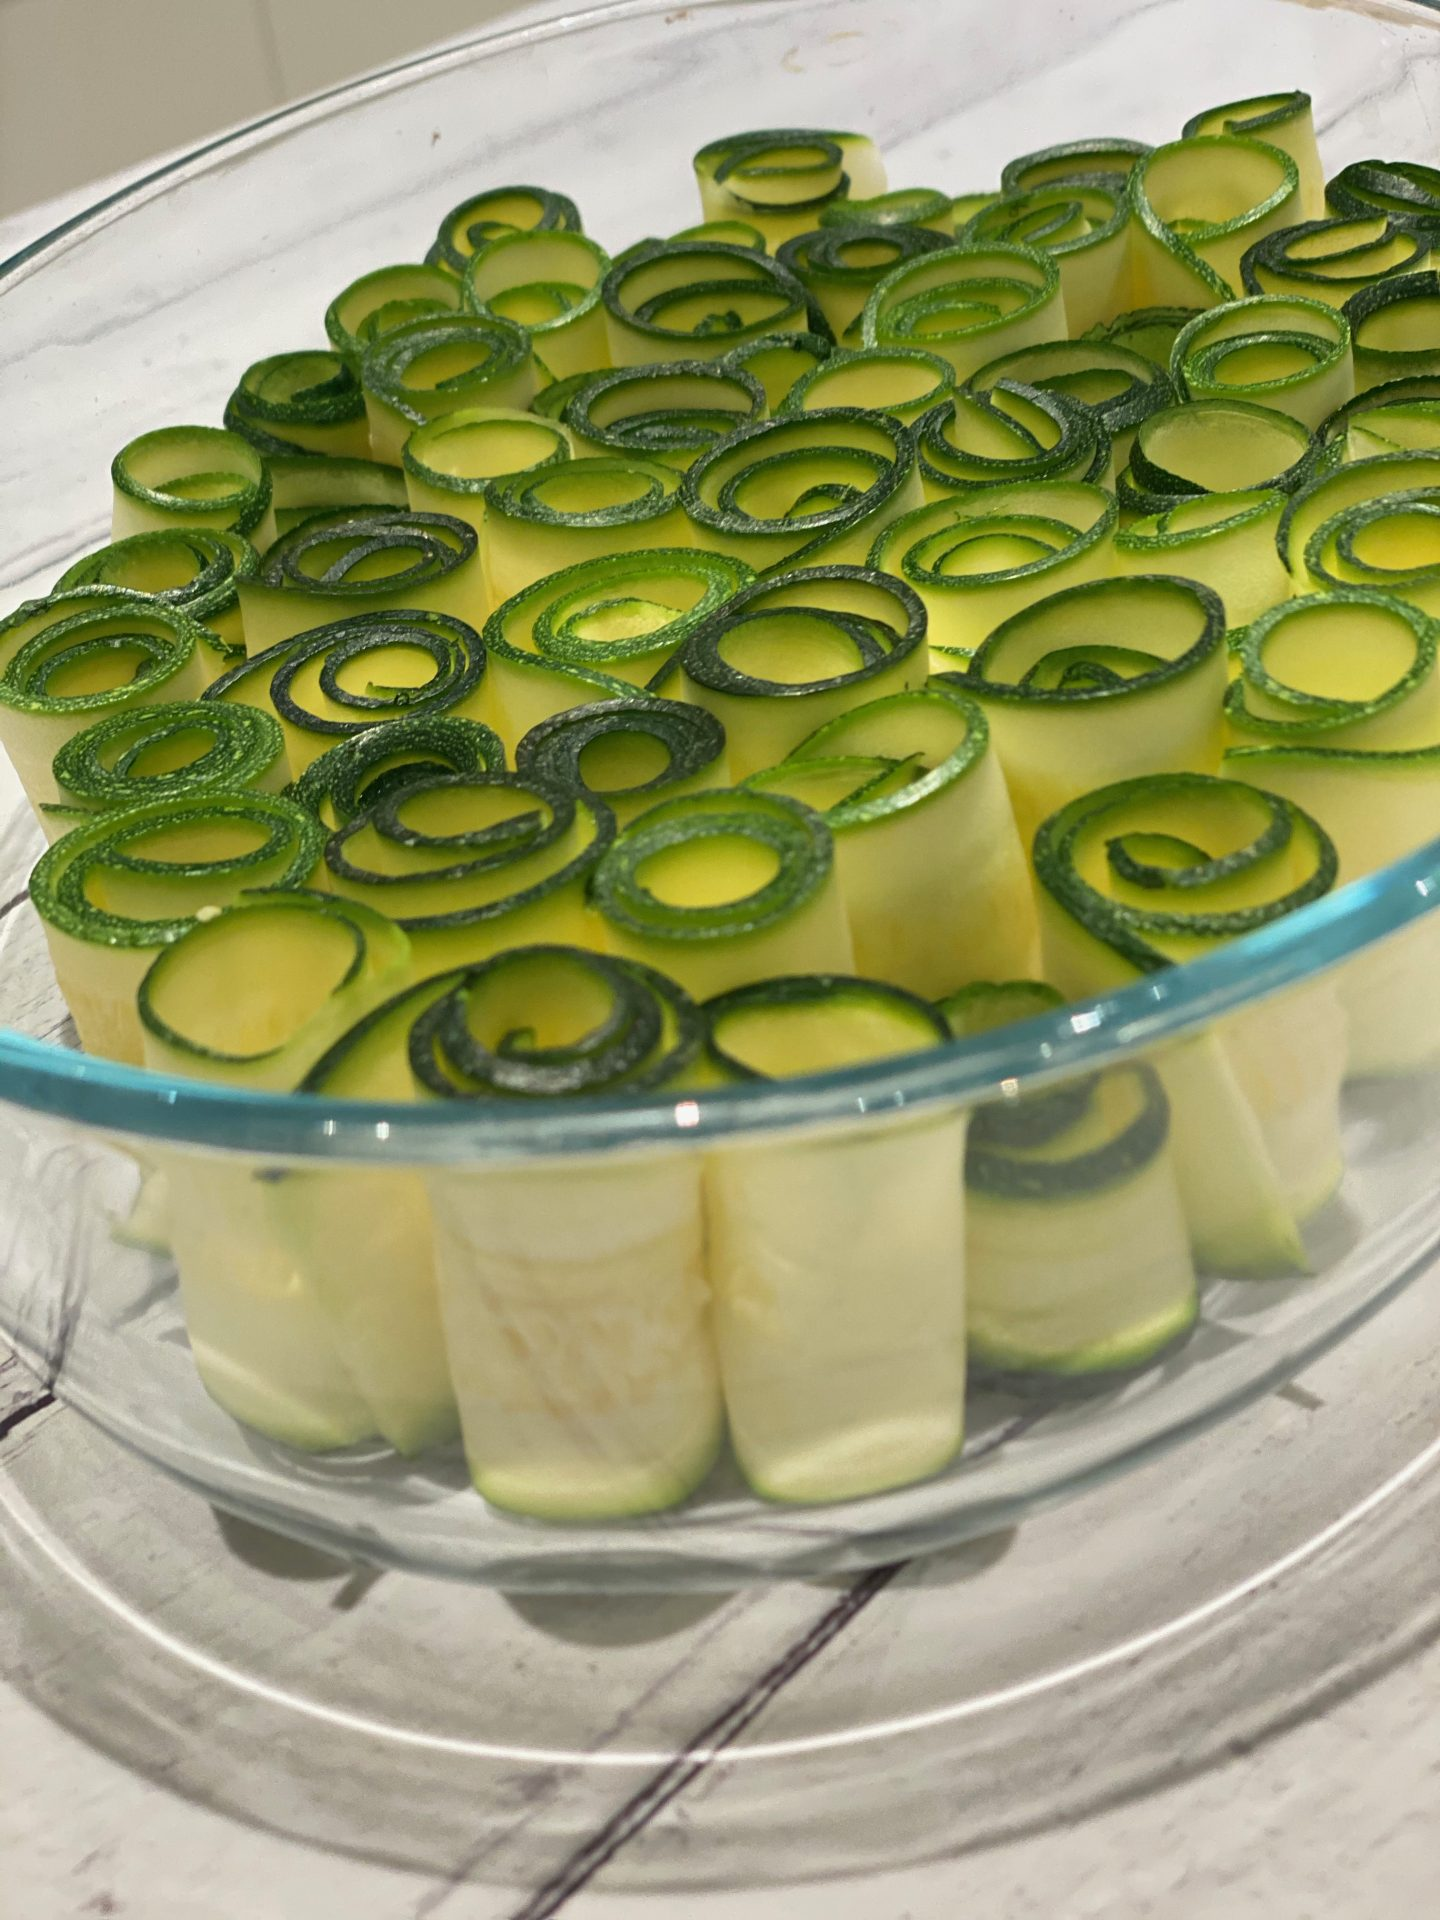 Courgette wheels